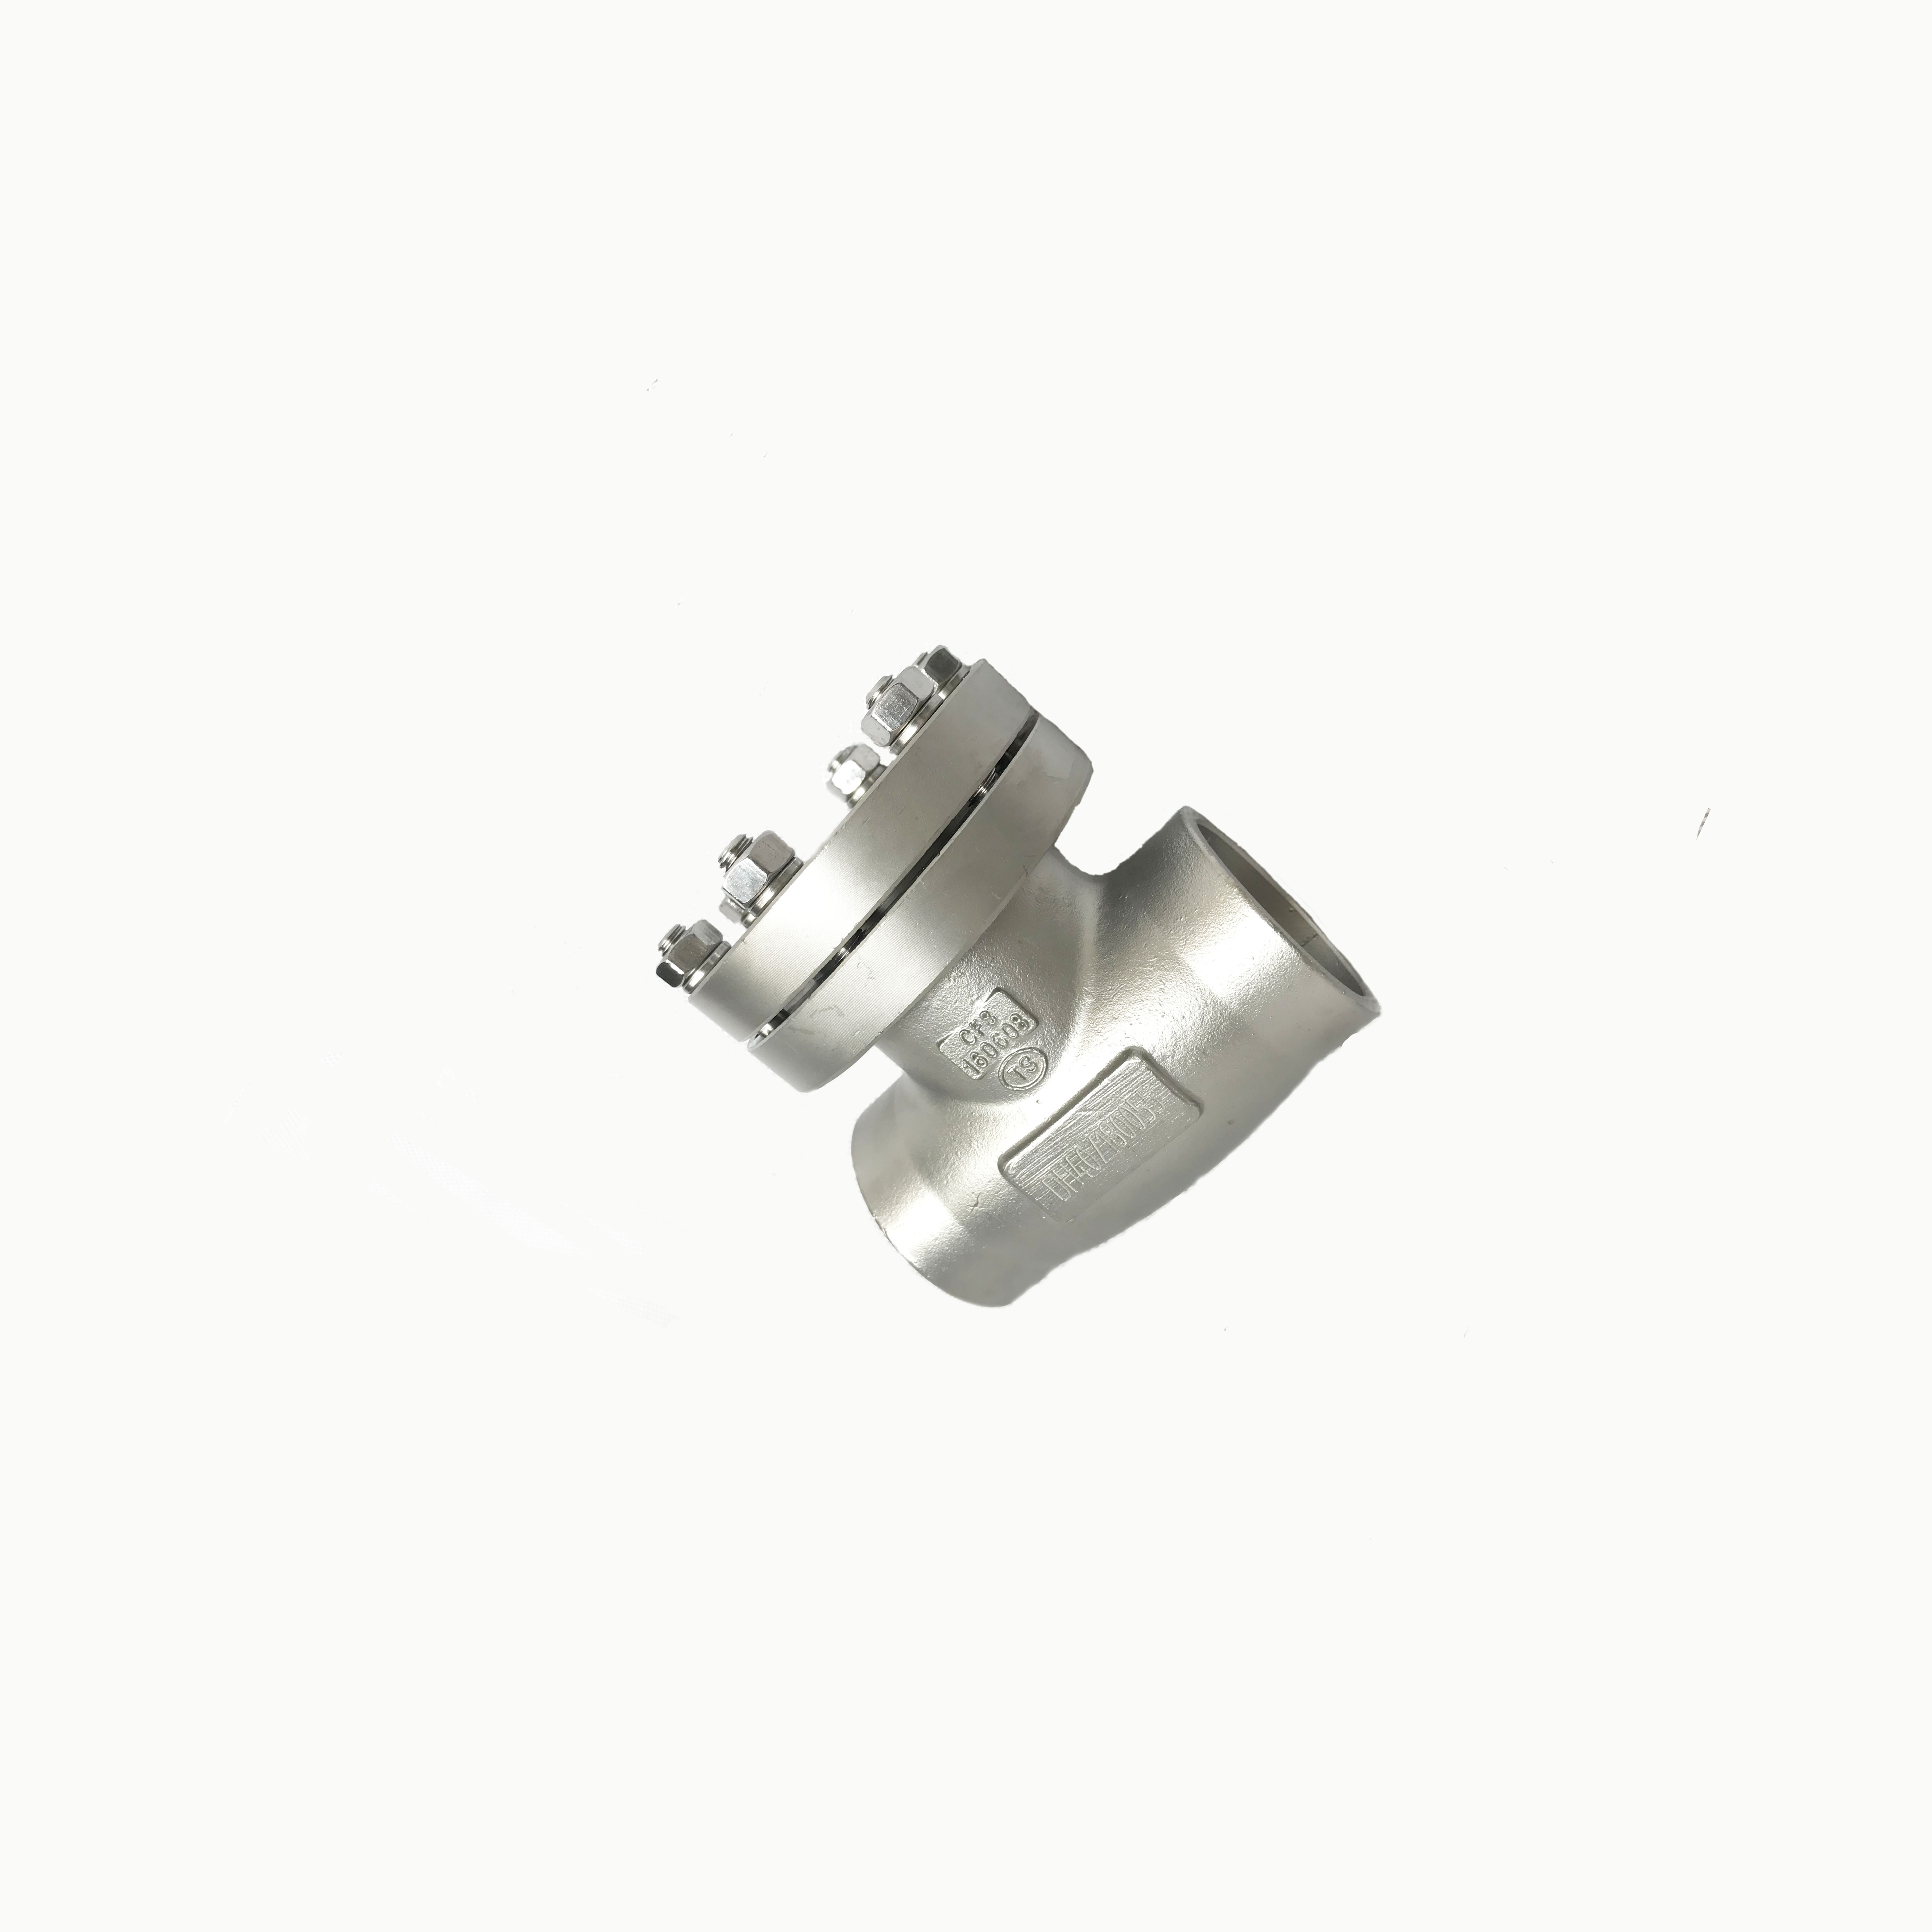 cryogenic stem jacket check valve diy cree cxc 3590 CDH61F diesel engine fuel pump pressure valve truck <strong>050</strong>